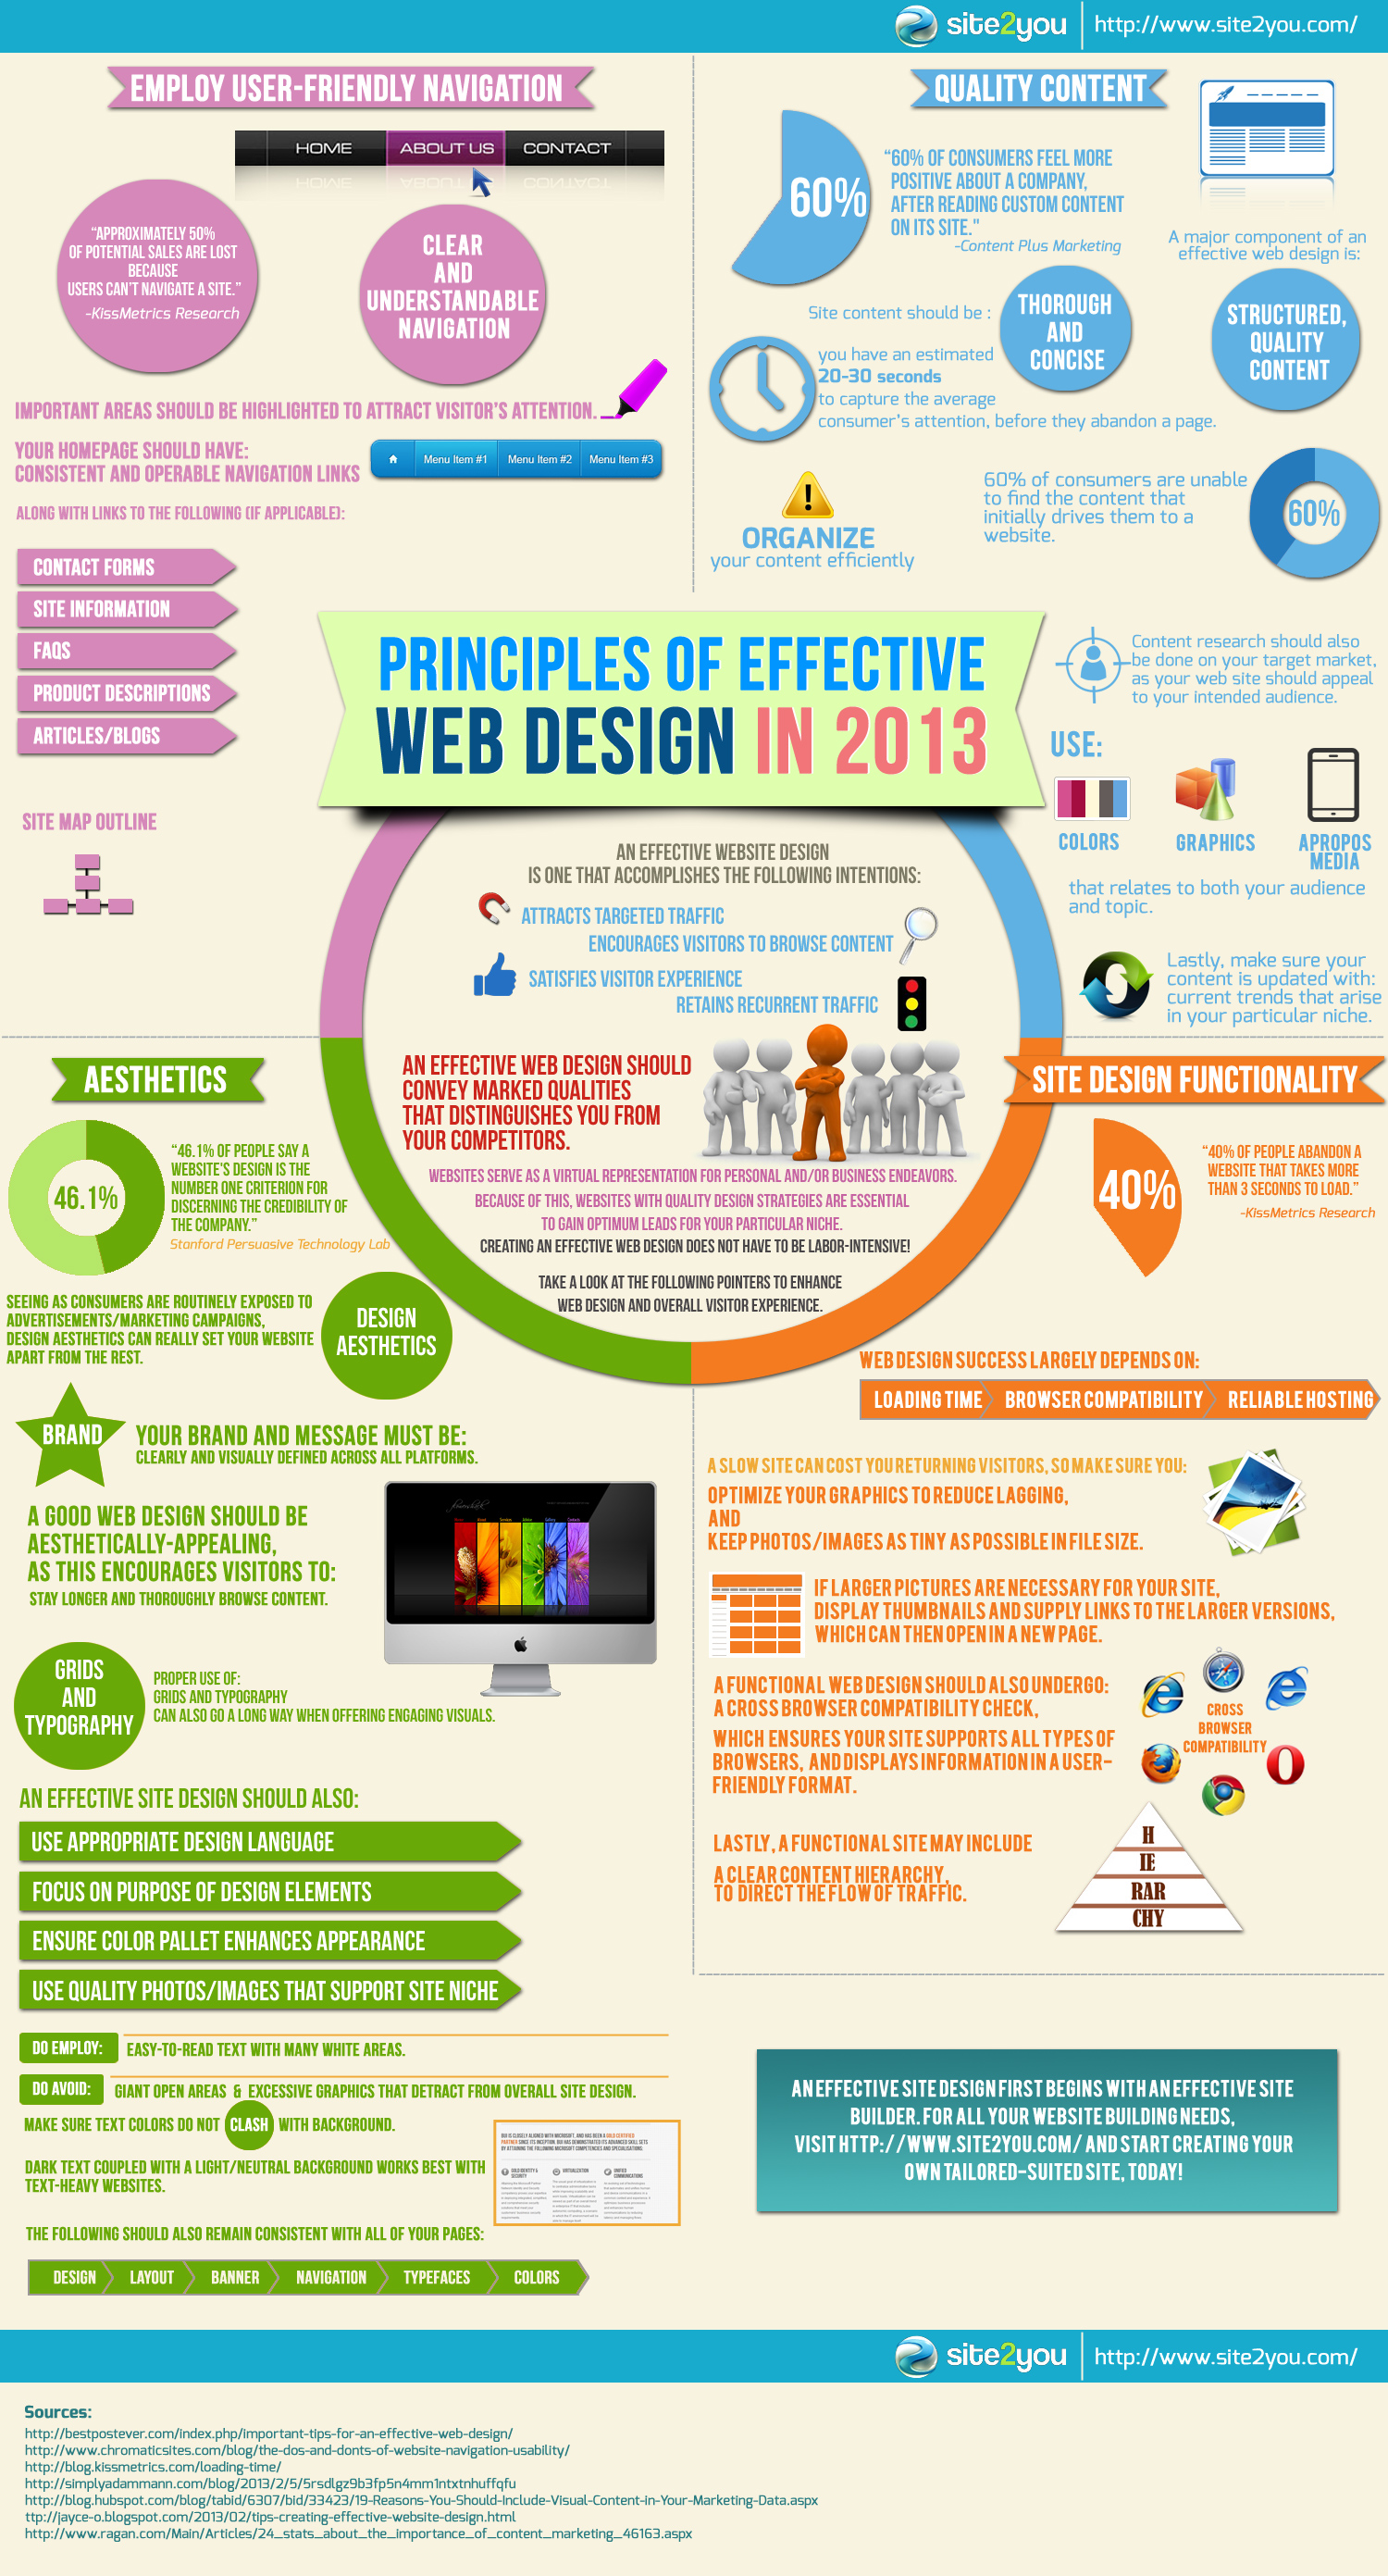 Principles Of Design List : Principles of effective web design in infographic